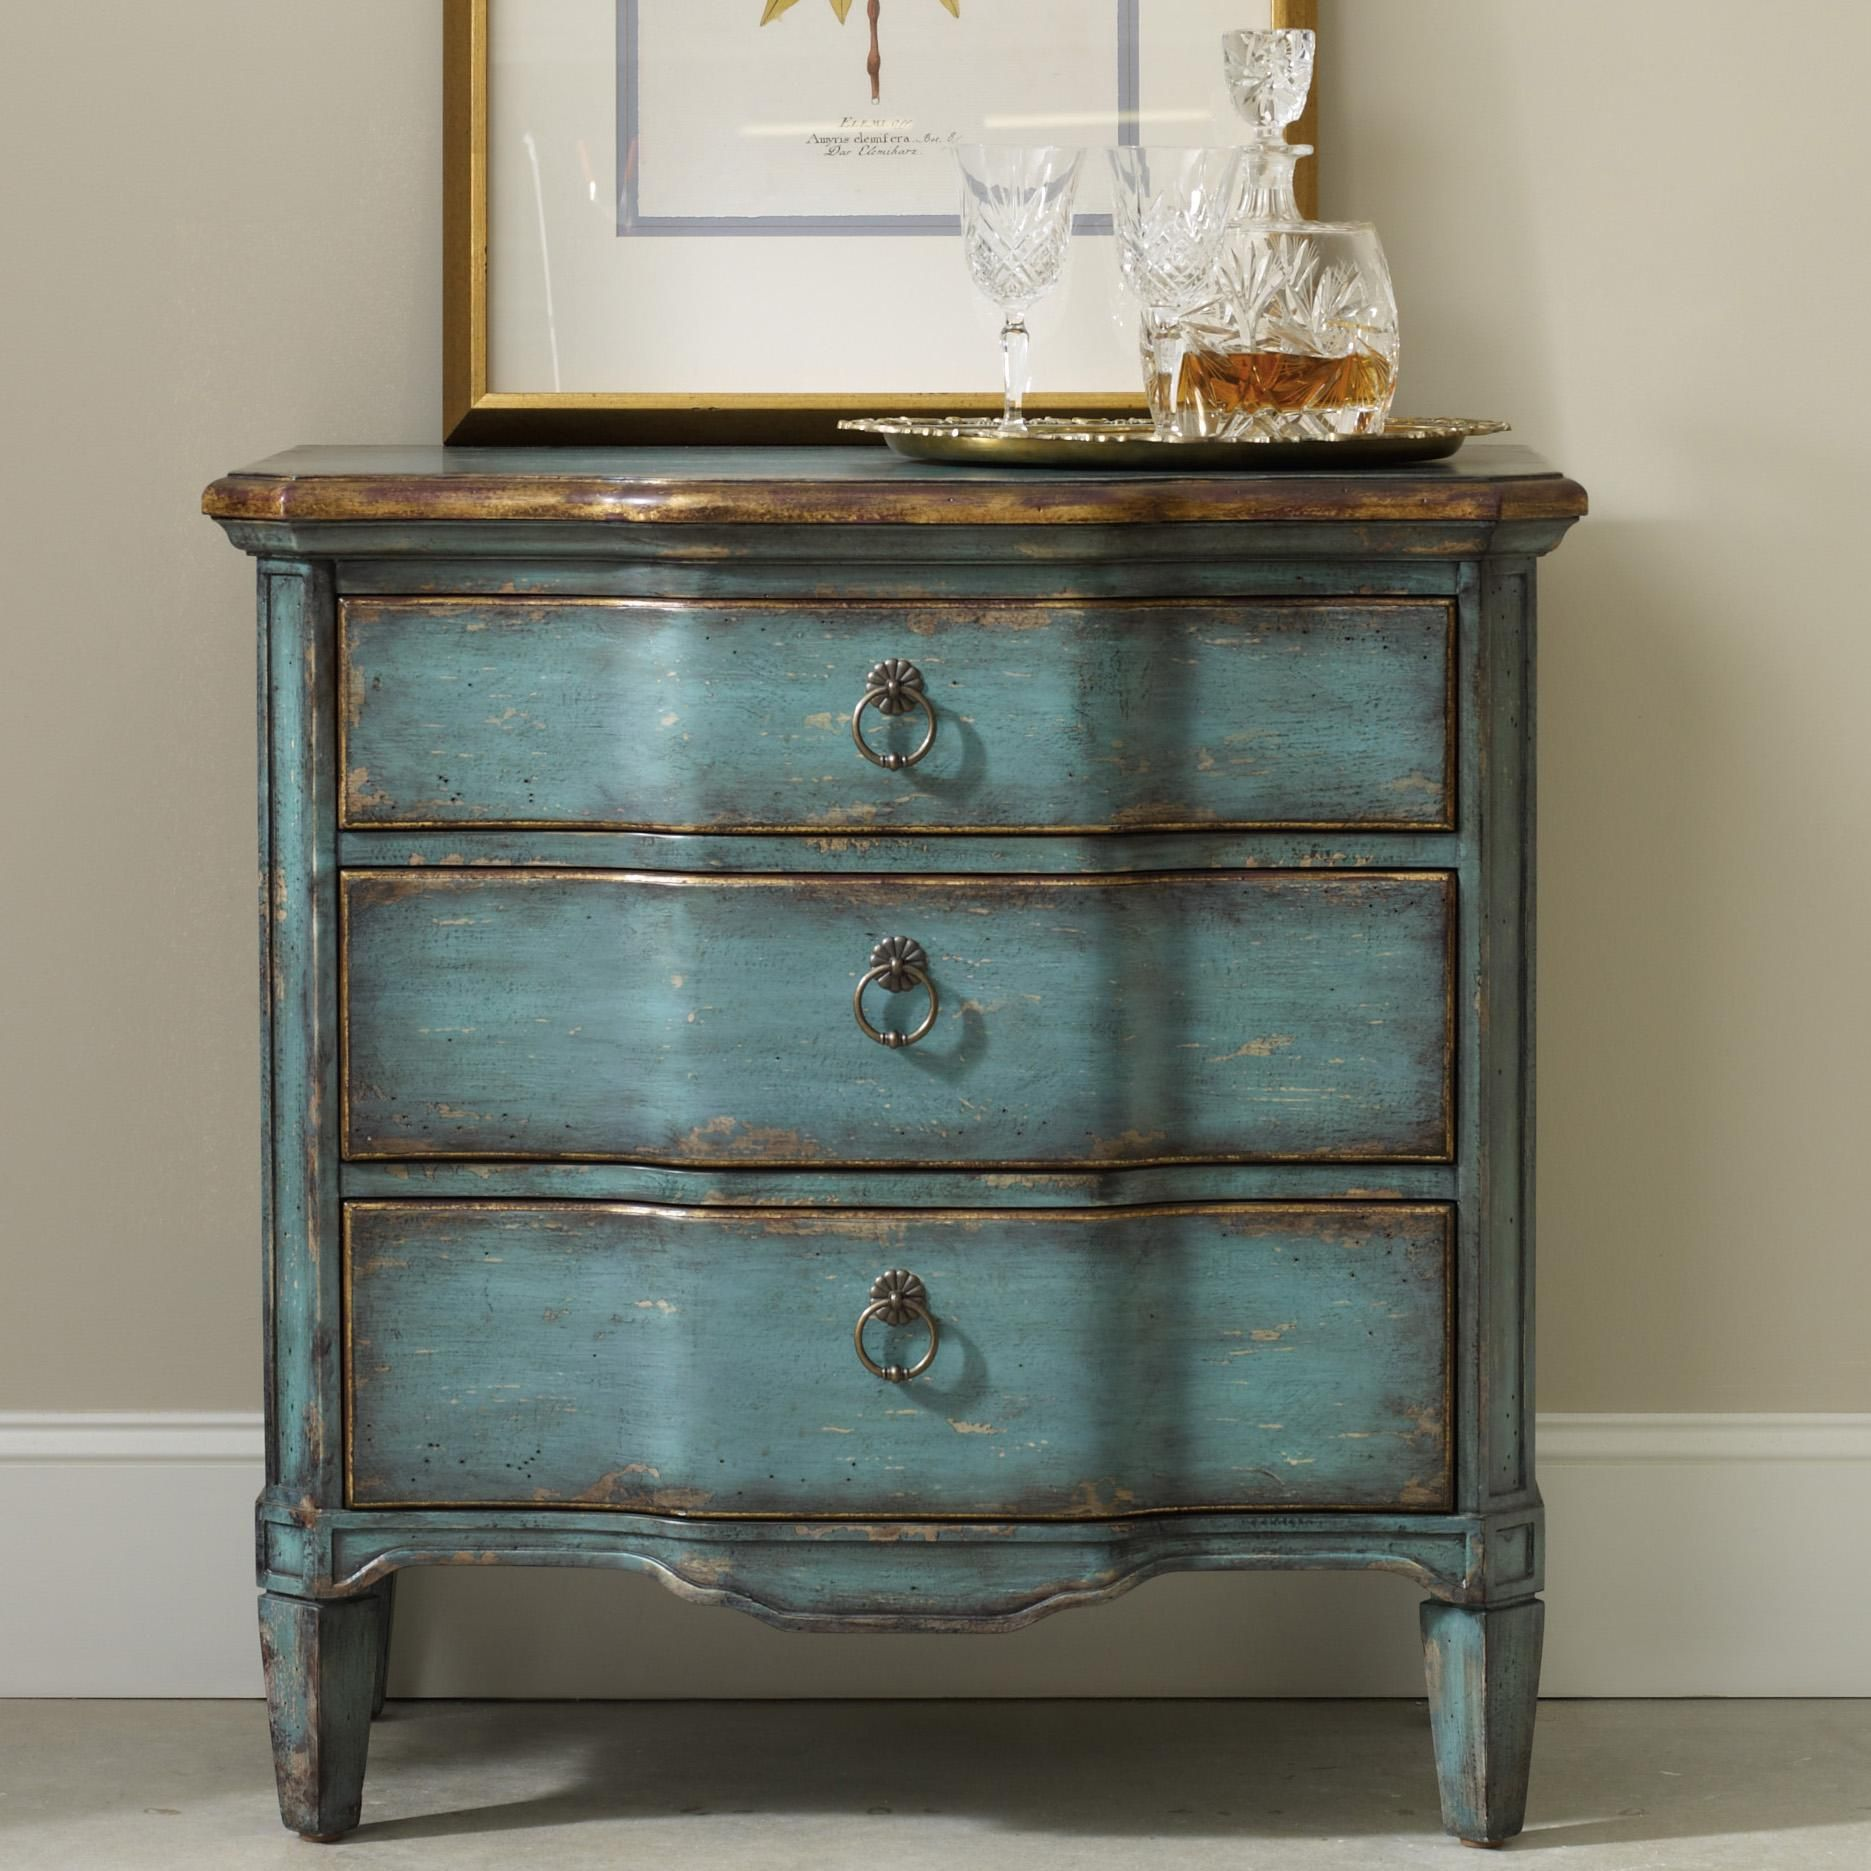 awesome small depth excellent cabinets chest plus skinny tall frame accent and cabinet on old image metal with amusing drawer rustic archaiccomely narrow drawers